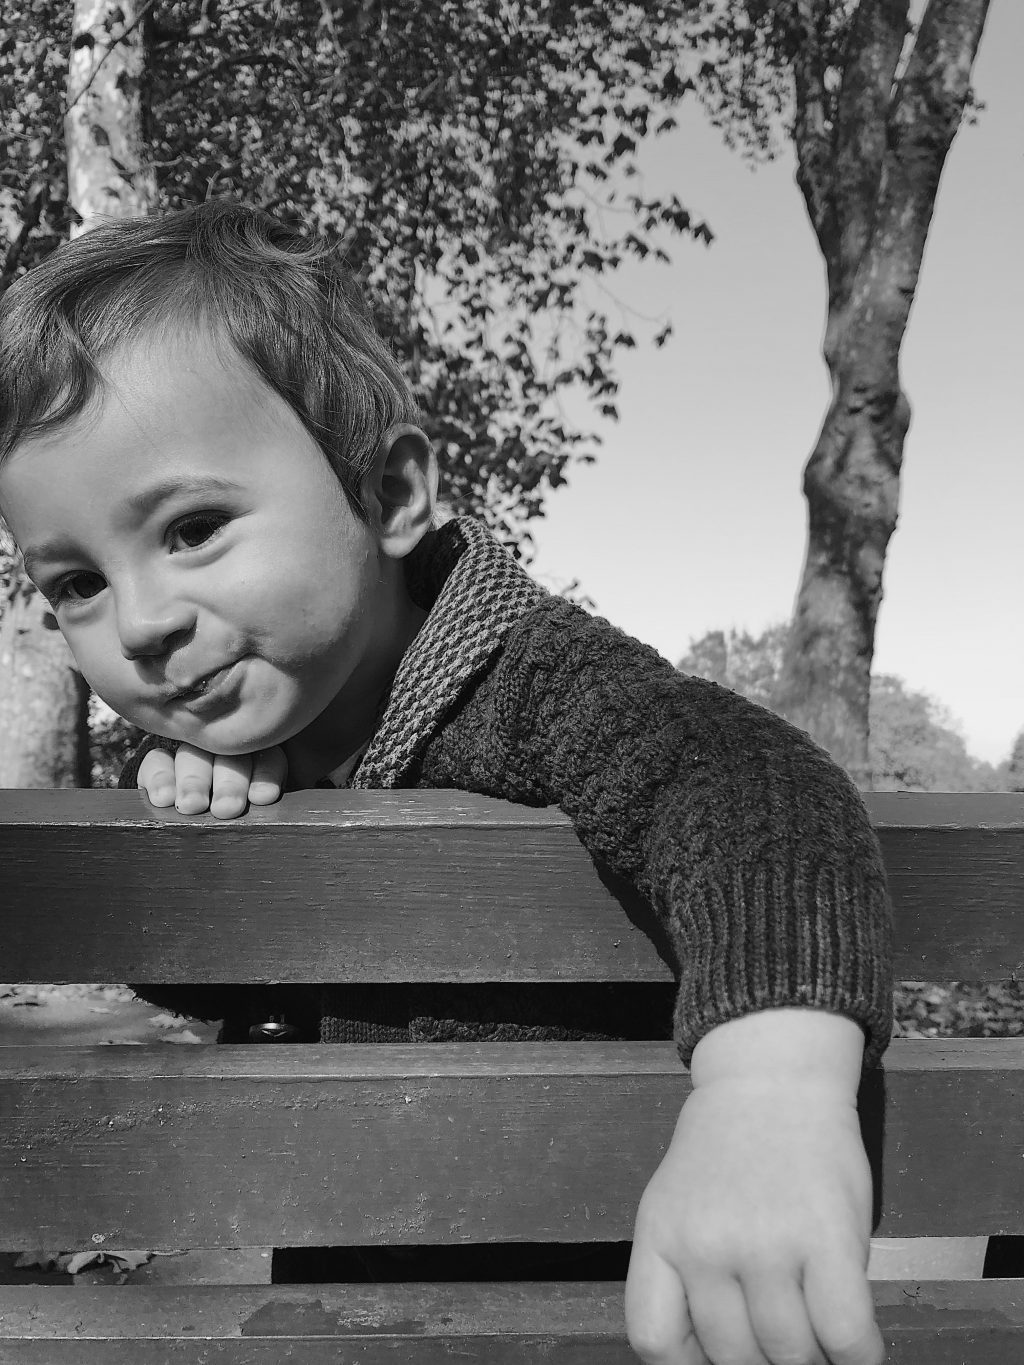 Black and whit portrait of a 10 month old baby leaning over park bench